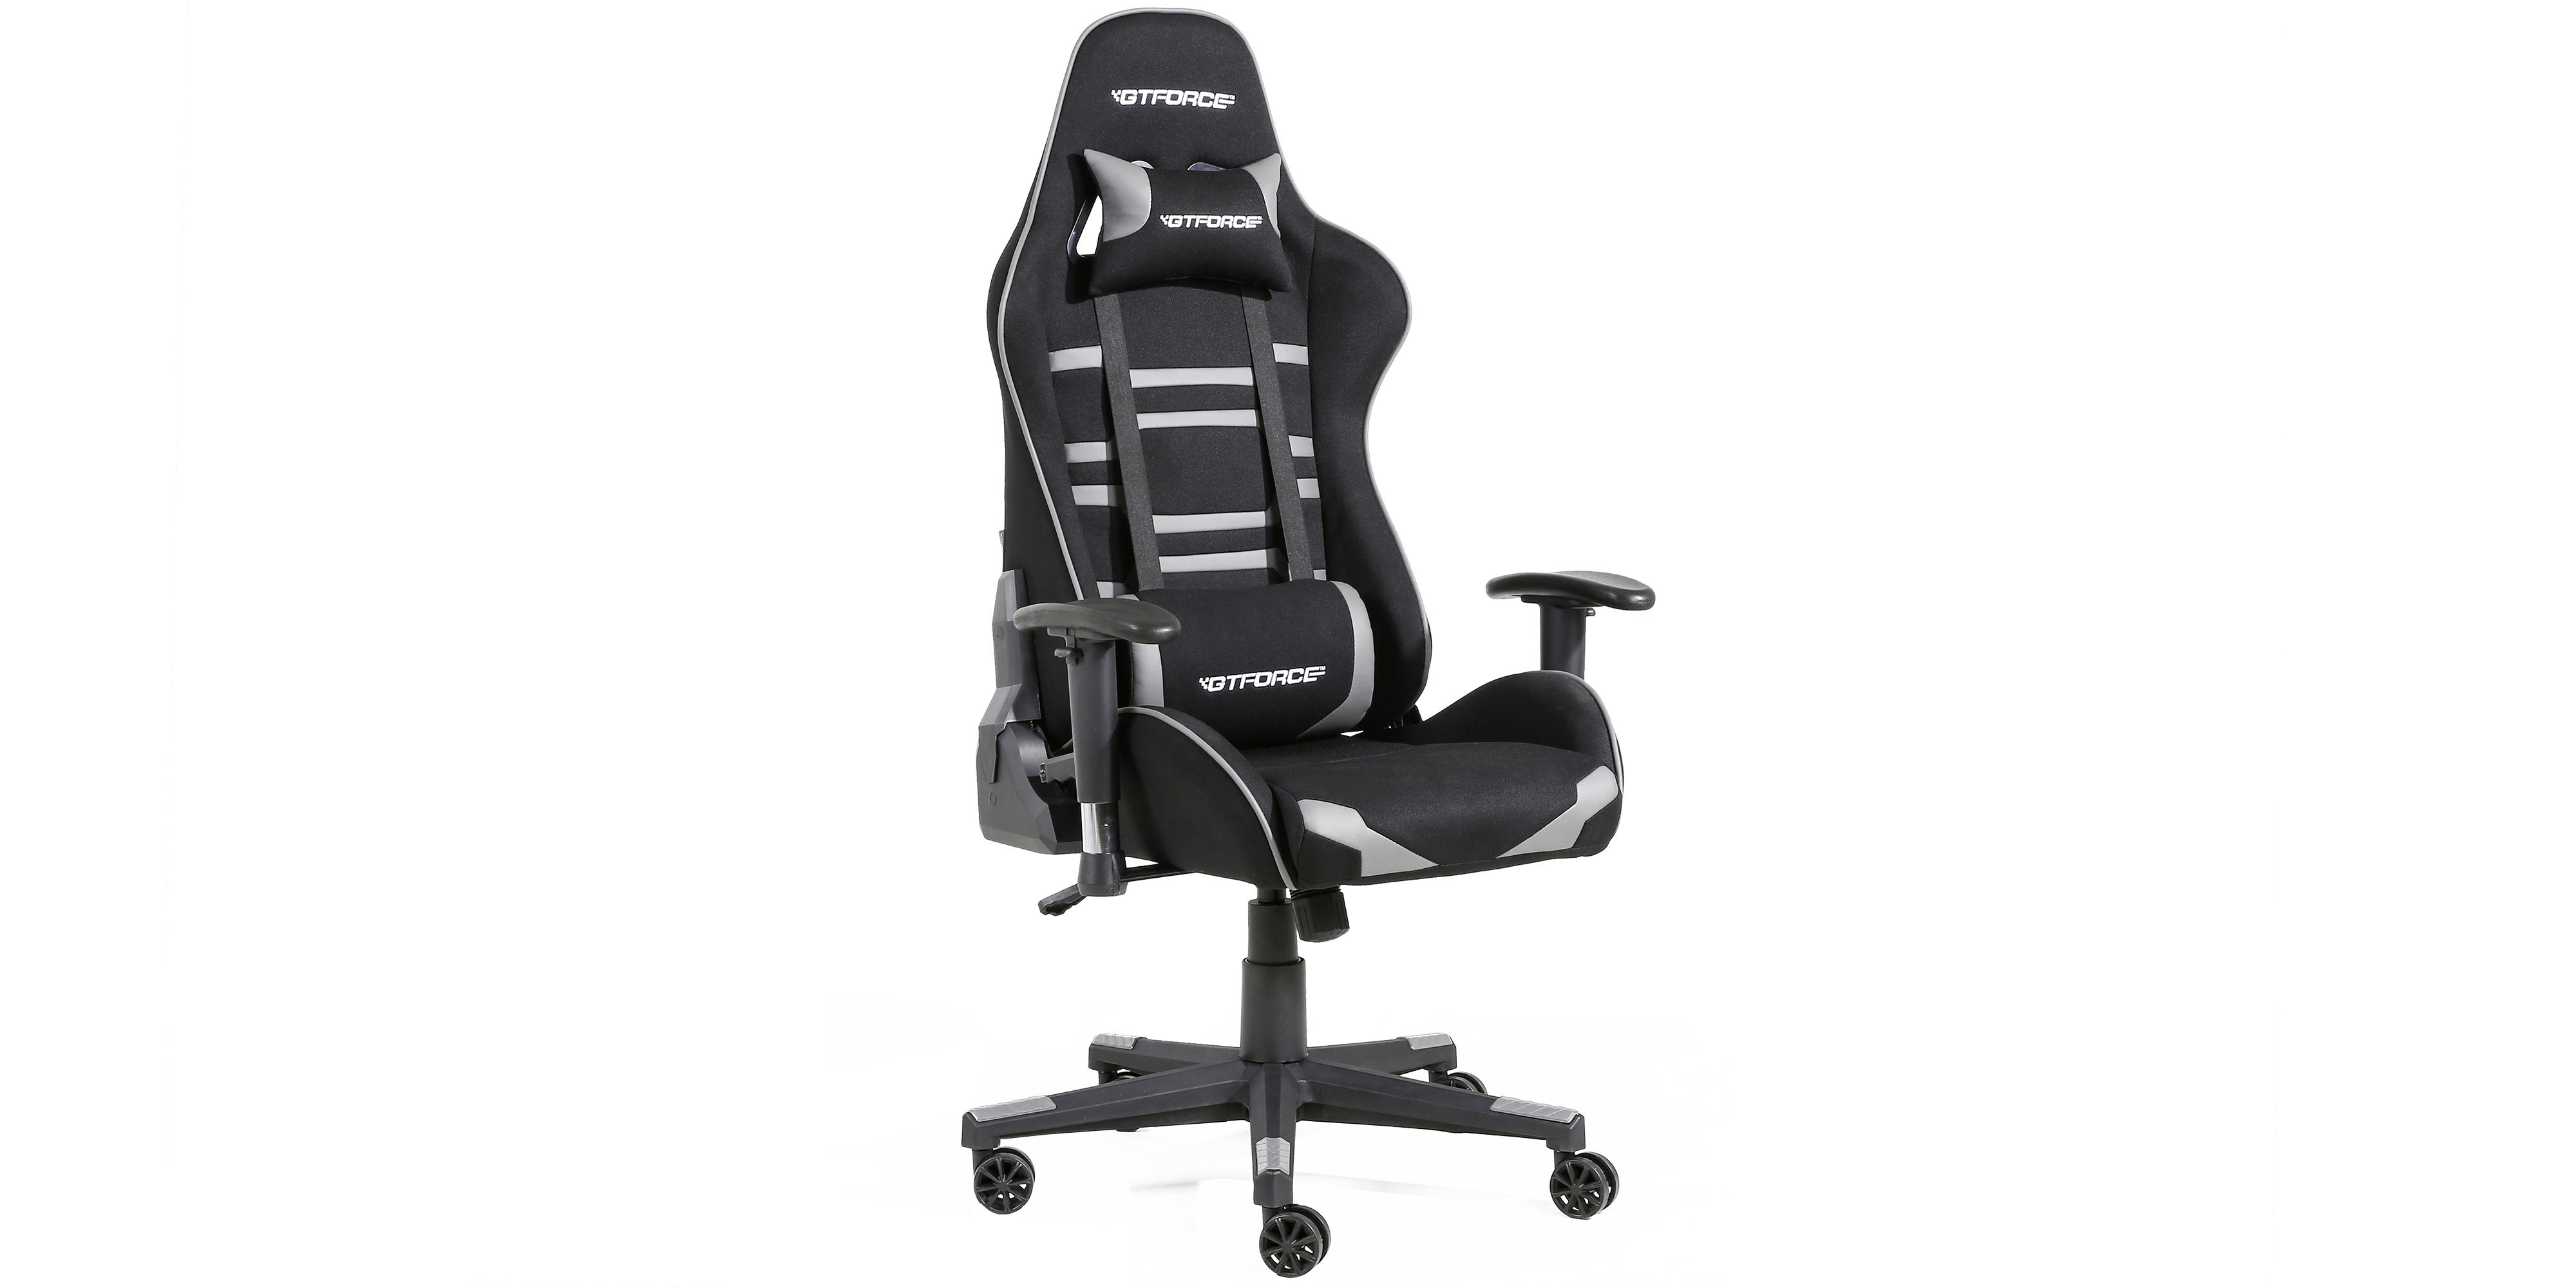 Gtforce Evo Ct Gaming Chair With Recline In Black Grey